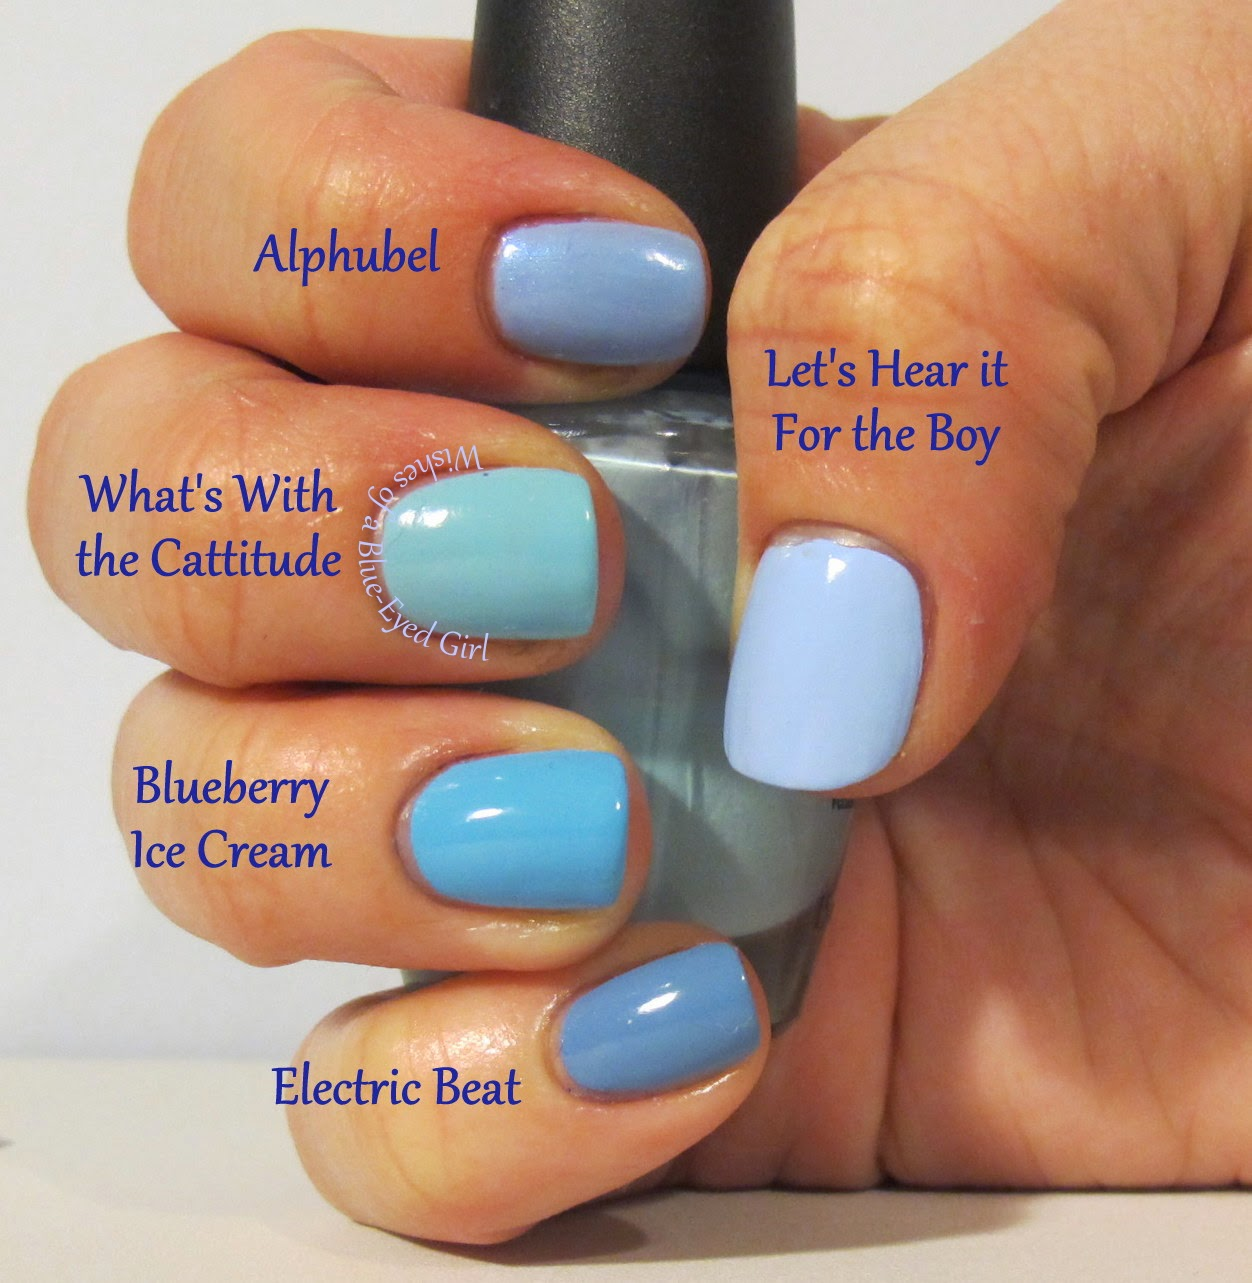 Deborah Lippmann Let S Hear It For The Boy Elevation Polish Alphubel Opi What With Catude Barrym Blueberry Ice Cream And China Glaze Electric